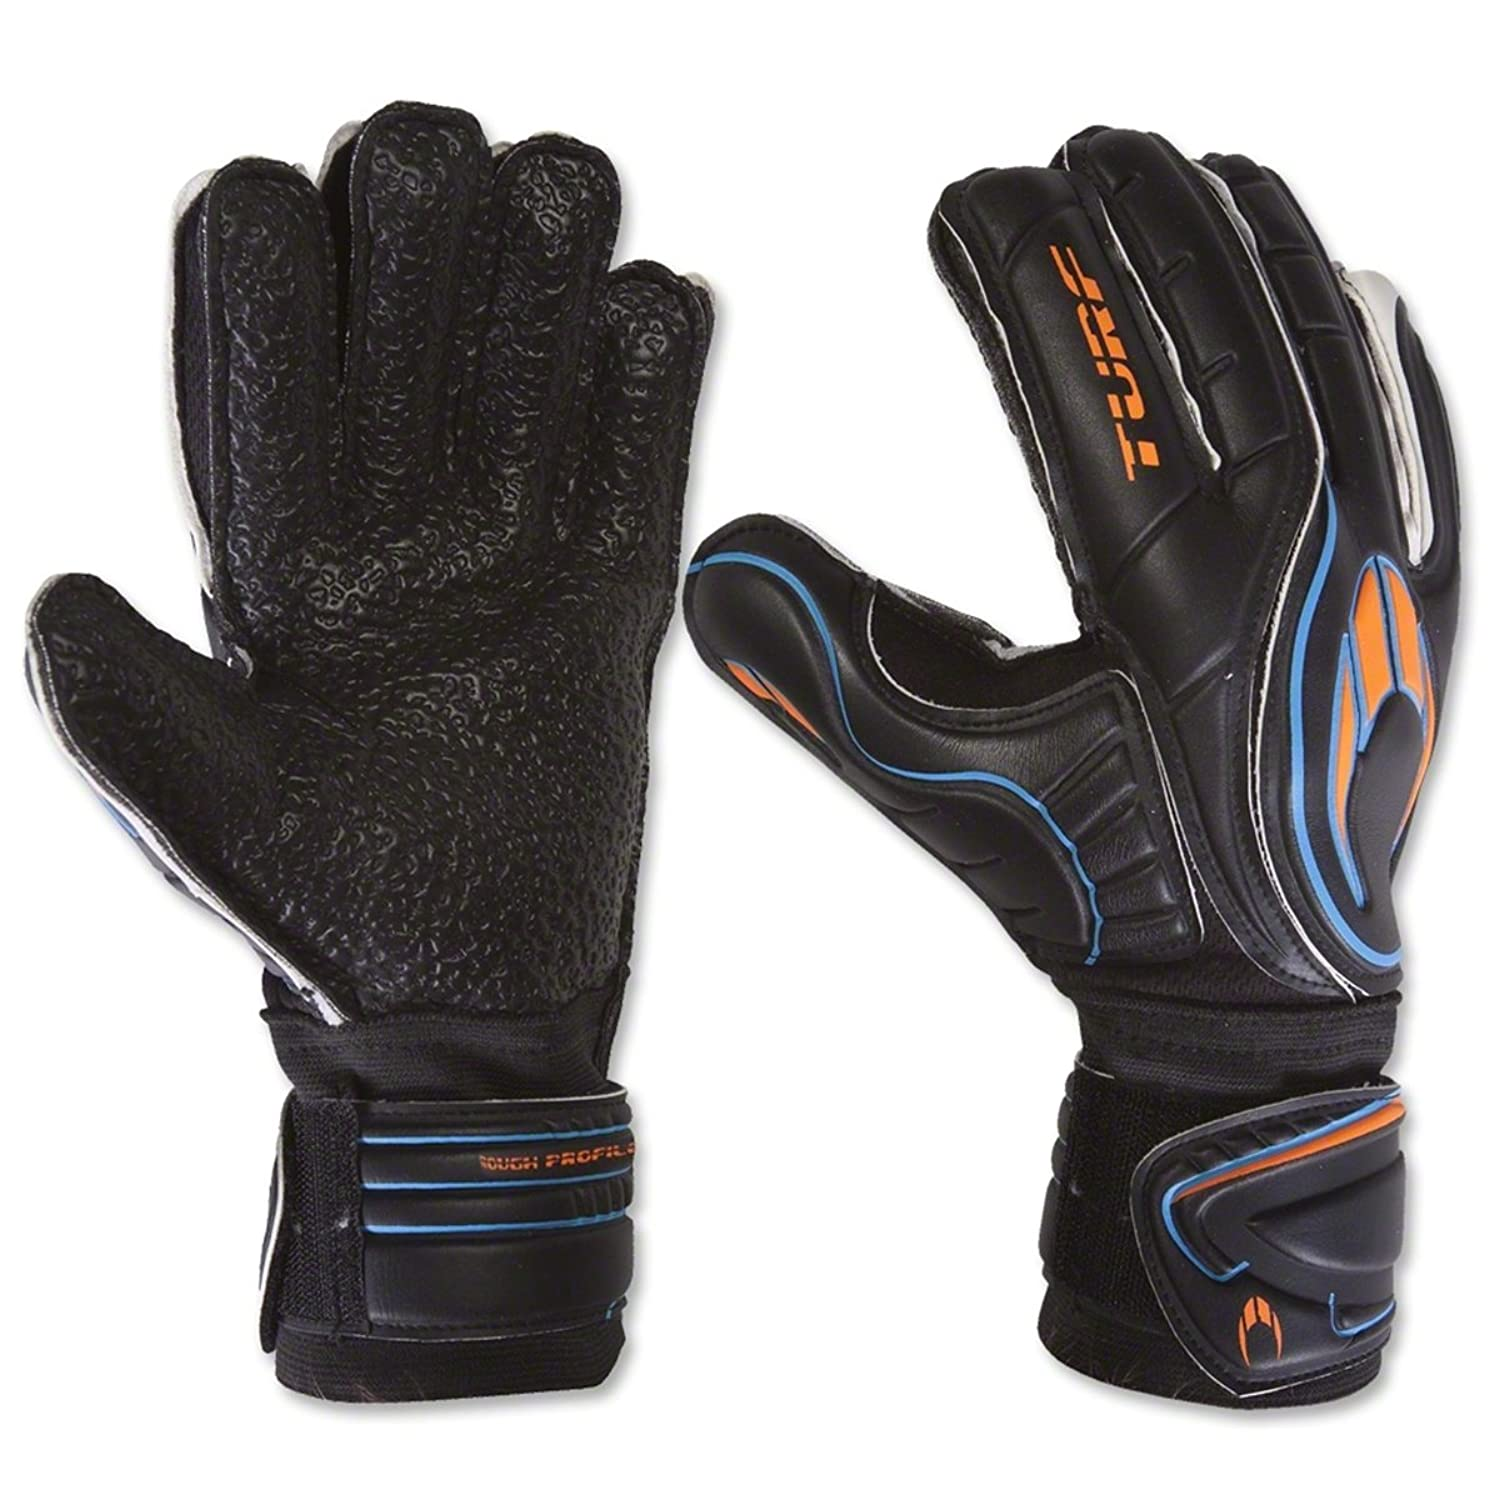 Ho Soccer Turf Protek Flat 14 Goalkeeping Glove lc designs co ltd lcd 73483